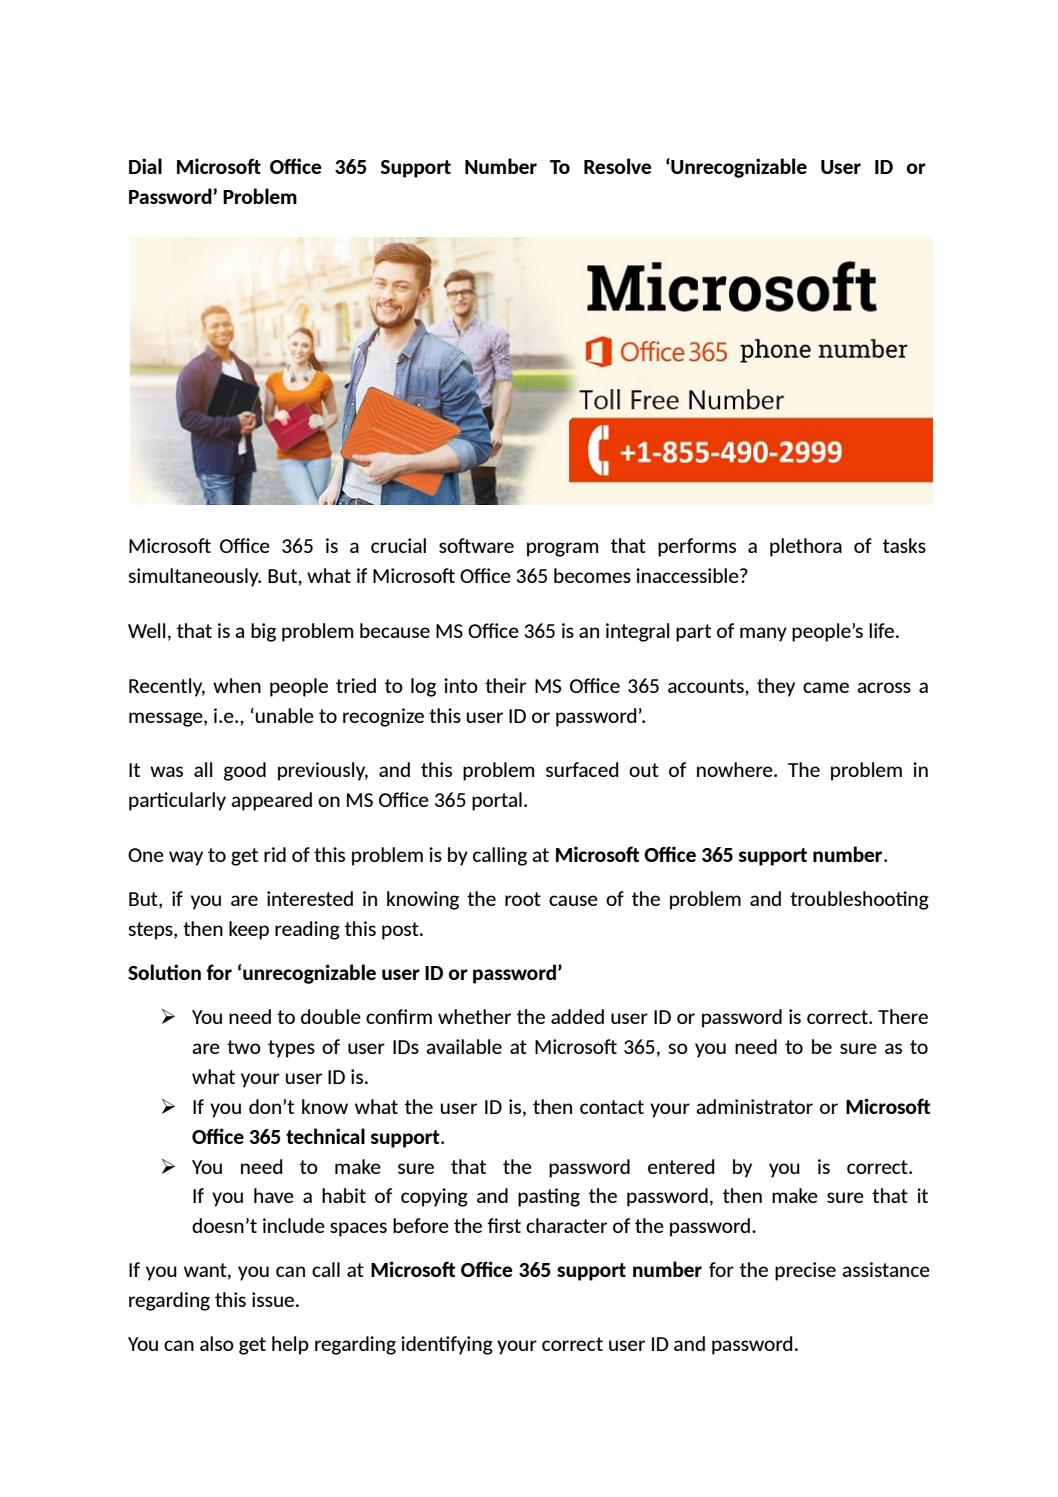 Microsoft office 365 customer care number +1-855-490-2999 by